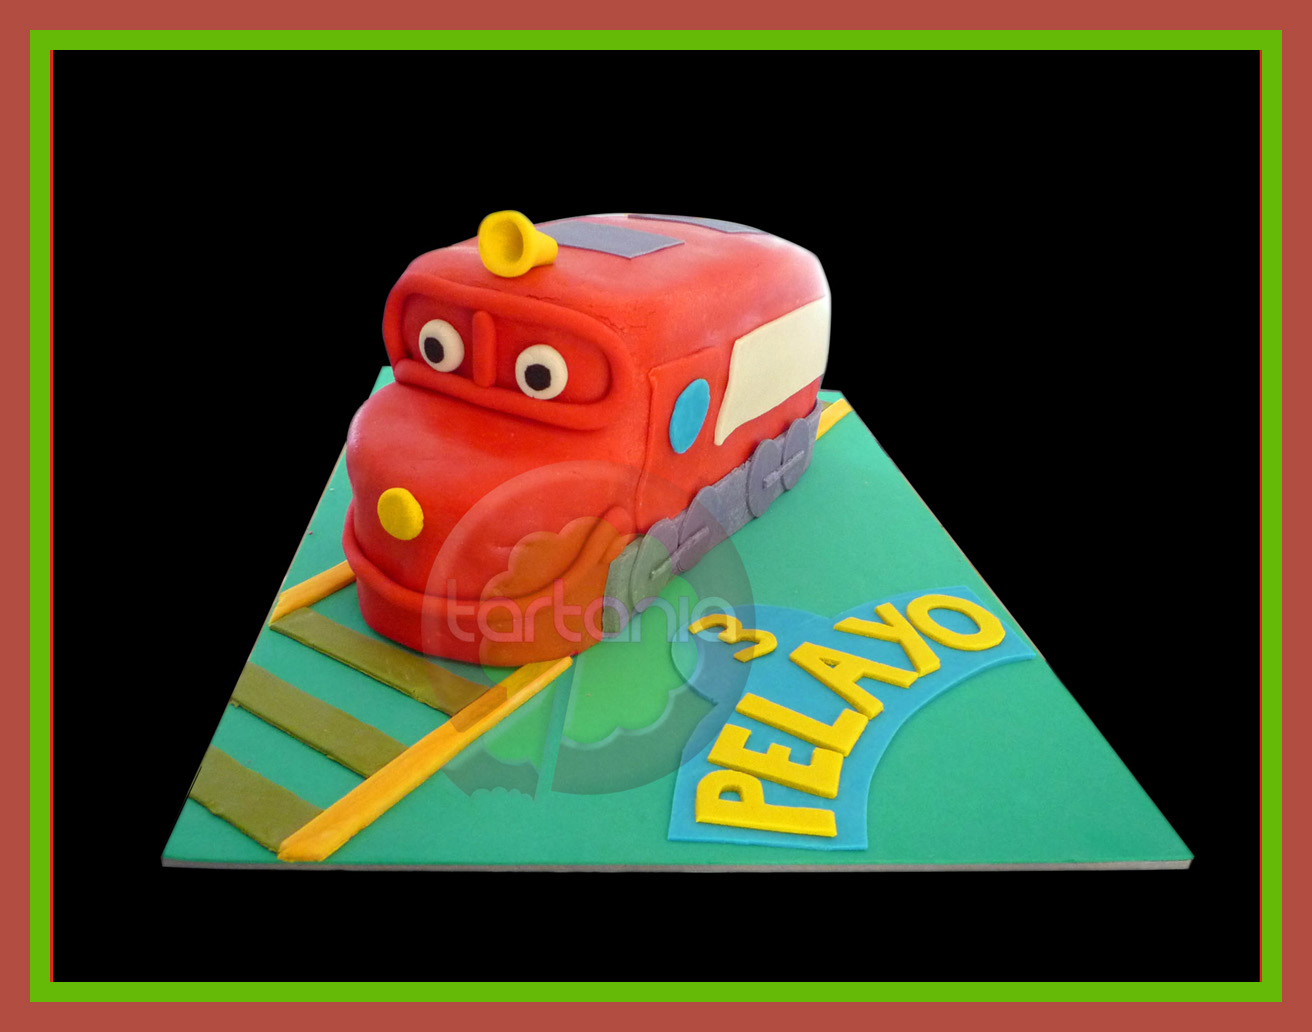 Tarta Chuggington